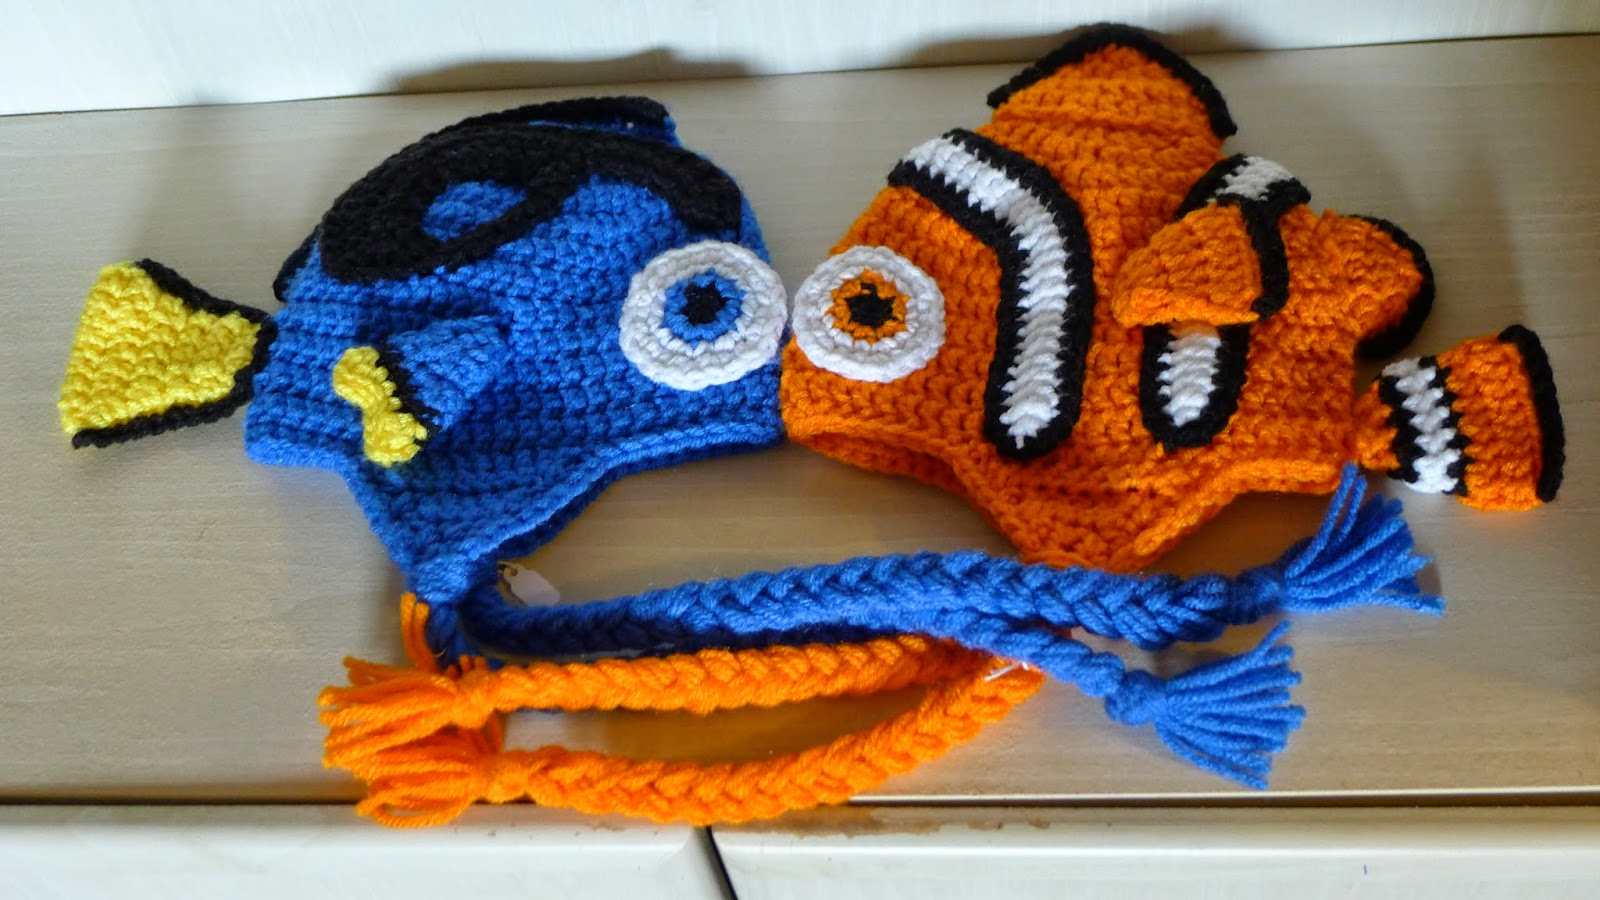 Amigurumi Sailor Octopus Pattern Free : mnopxs2 the blog: Crochet Clownfish Hat